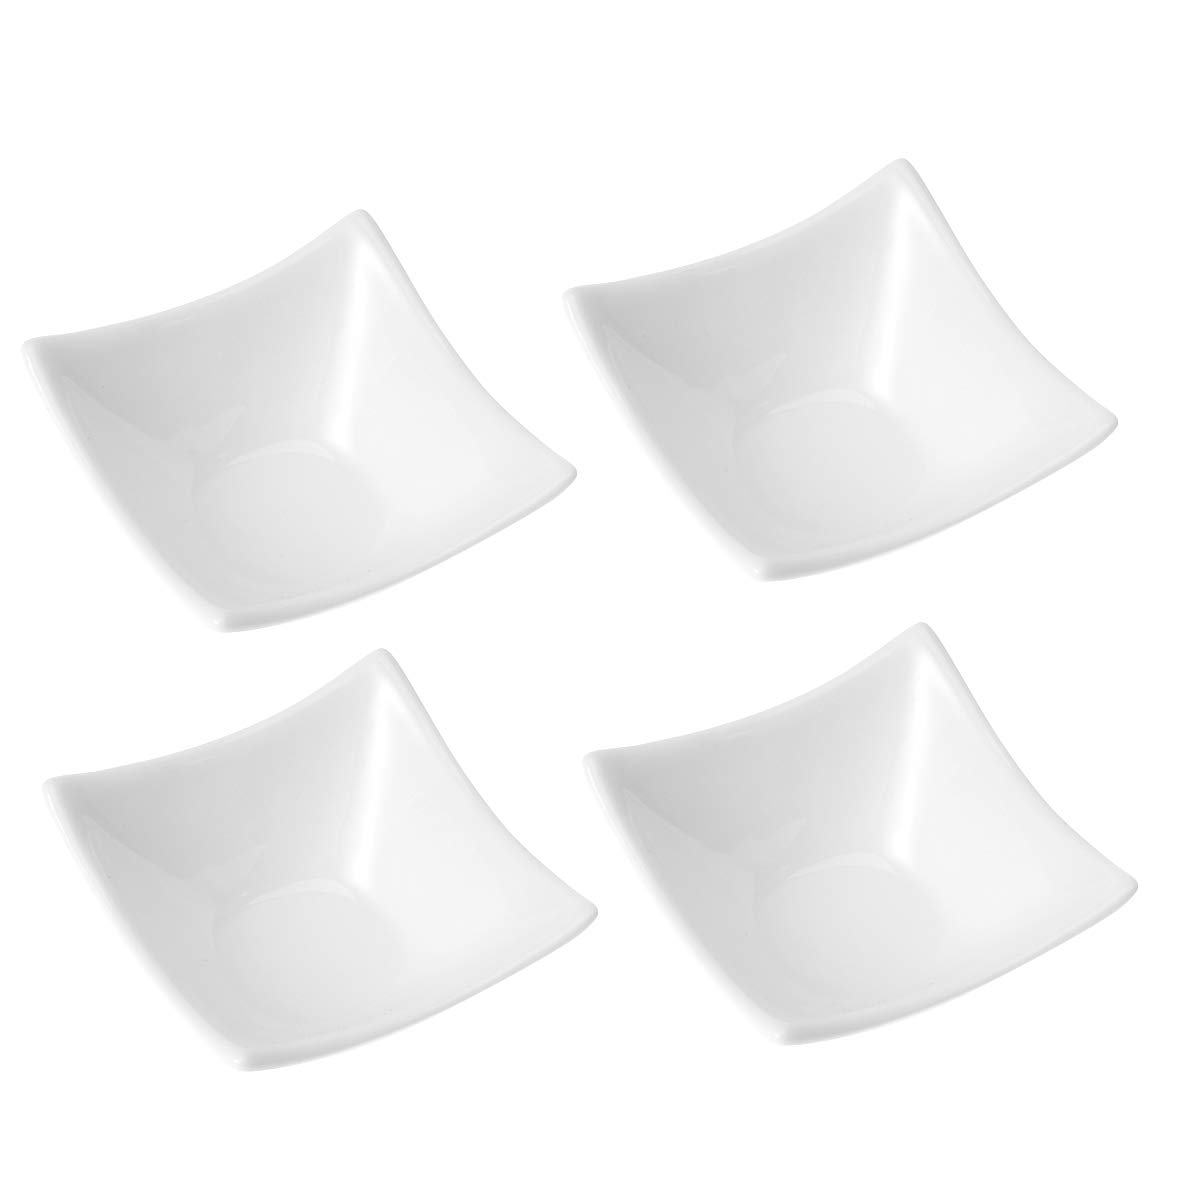 UPKOCH 4pcs Ceramic Sauce Dishes Dipping Dishes Dip Bowls Dip Platter (White)